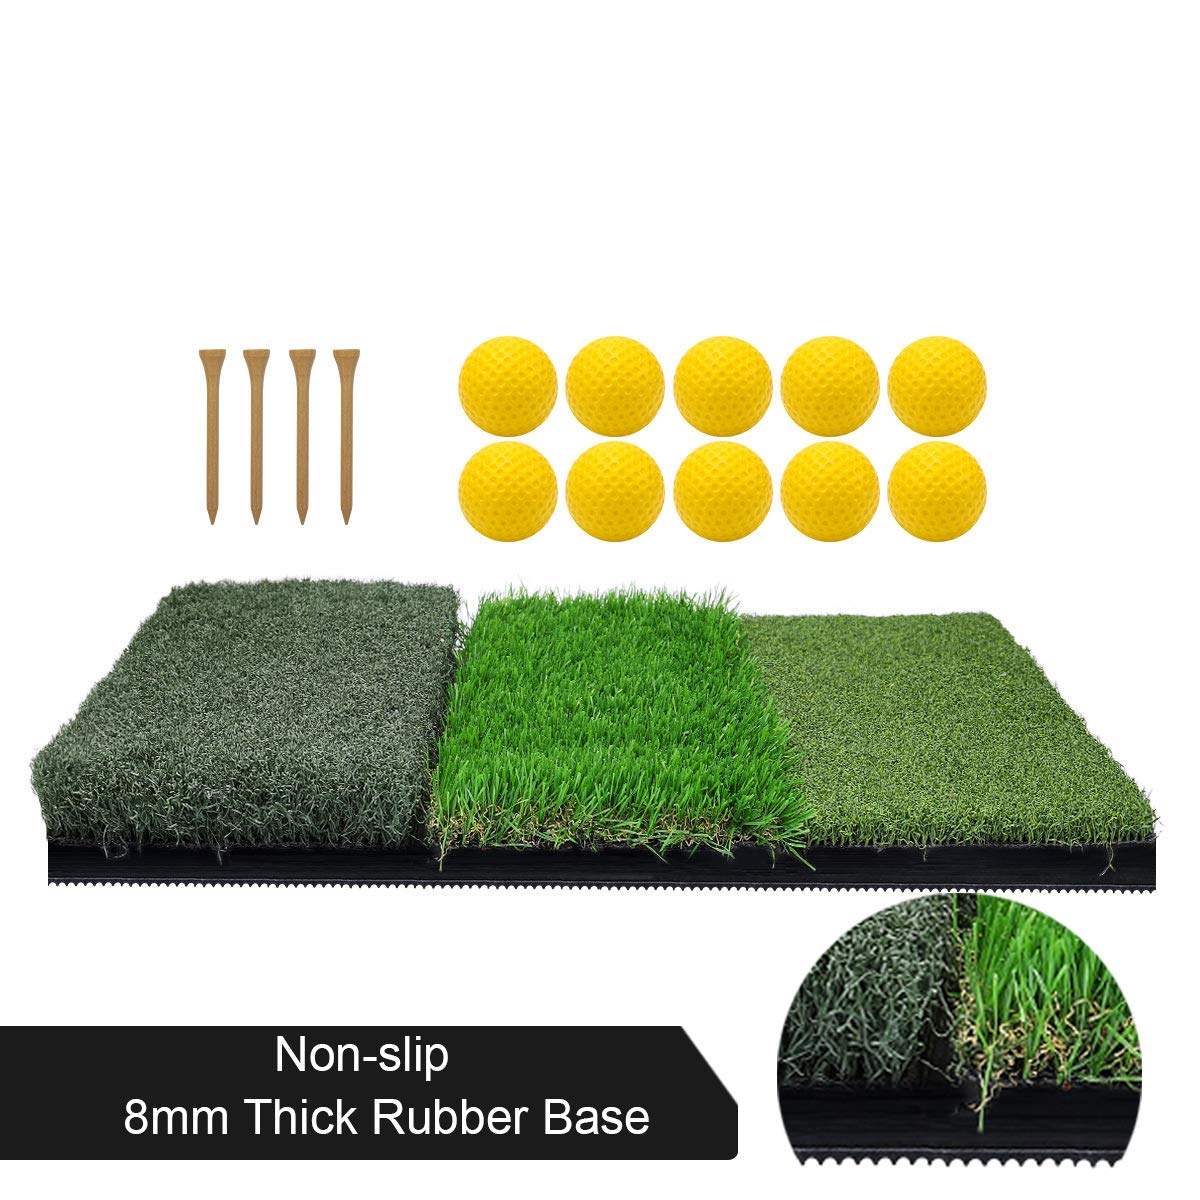 Tri-Turf Golf Hitting Mat, Portable Golf Grass Mat for Driving, Chipping Practice Training with Adjustable Tees and Foam Practice Balls, Ideal for Indoor or Outdoor Training by Keenstone